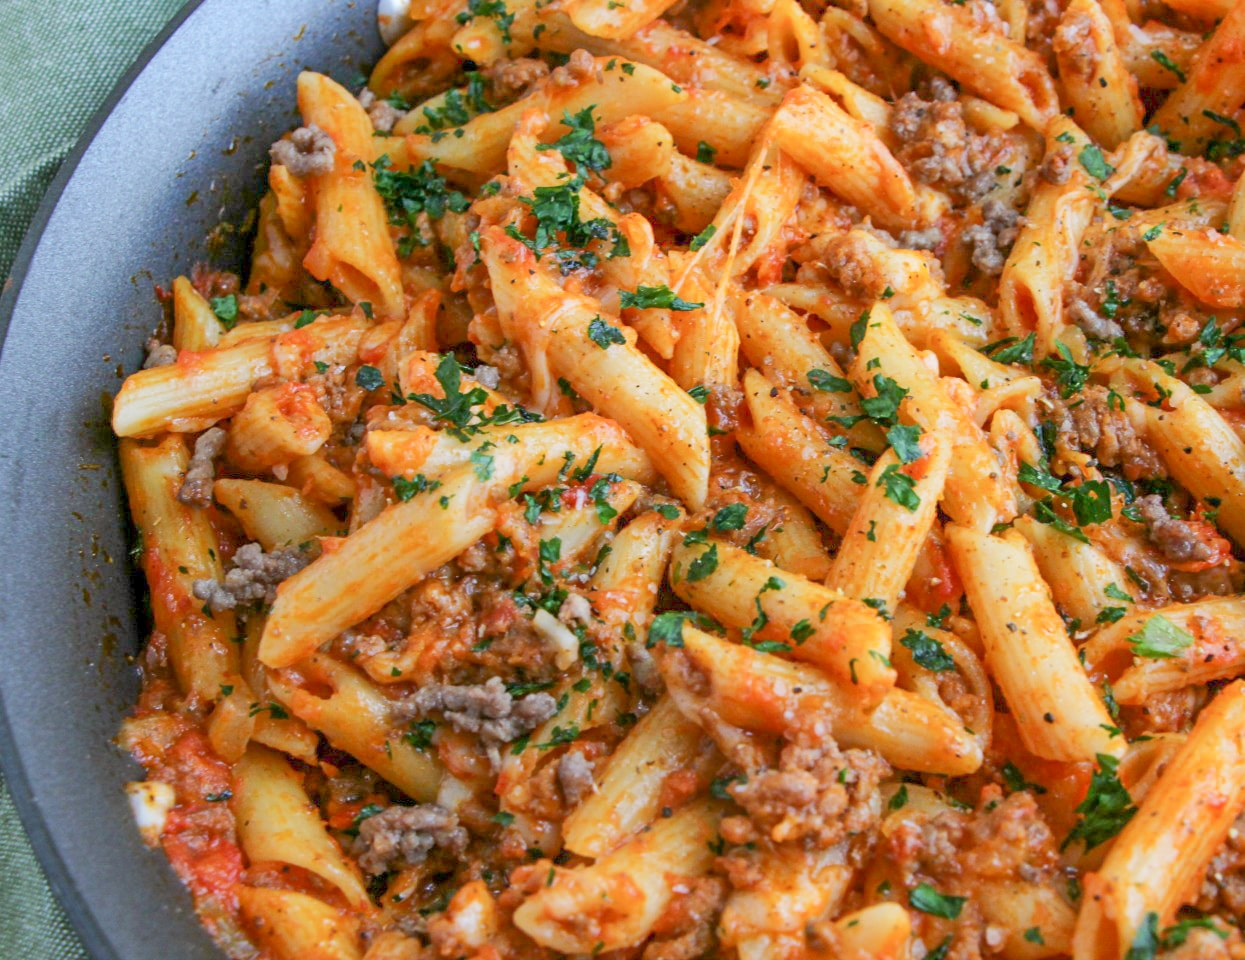 Mostaccioli pasta prepared in a skillet with sausage and cheese and marinara sauce garnished with fresh parsley.